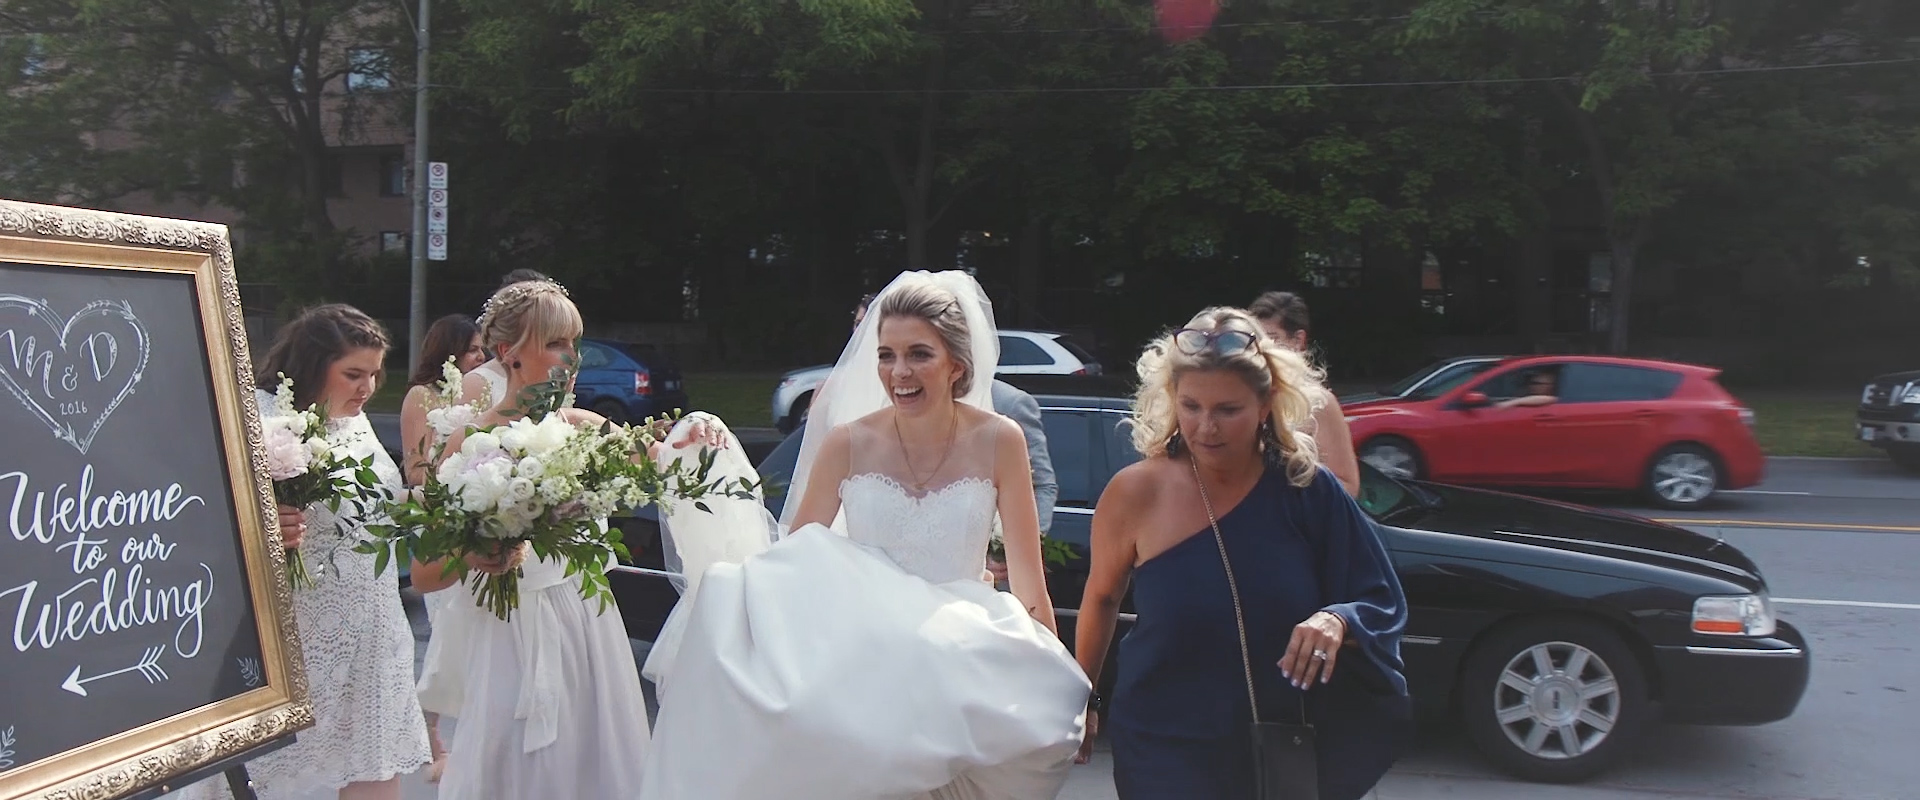 An image of a bride walking into her reception hall on her wedding day; taken from a Toronto Wedding Video